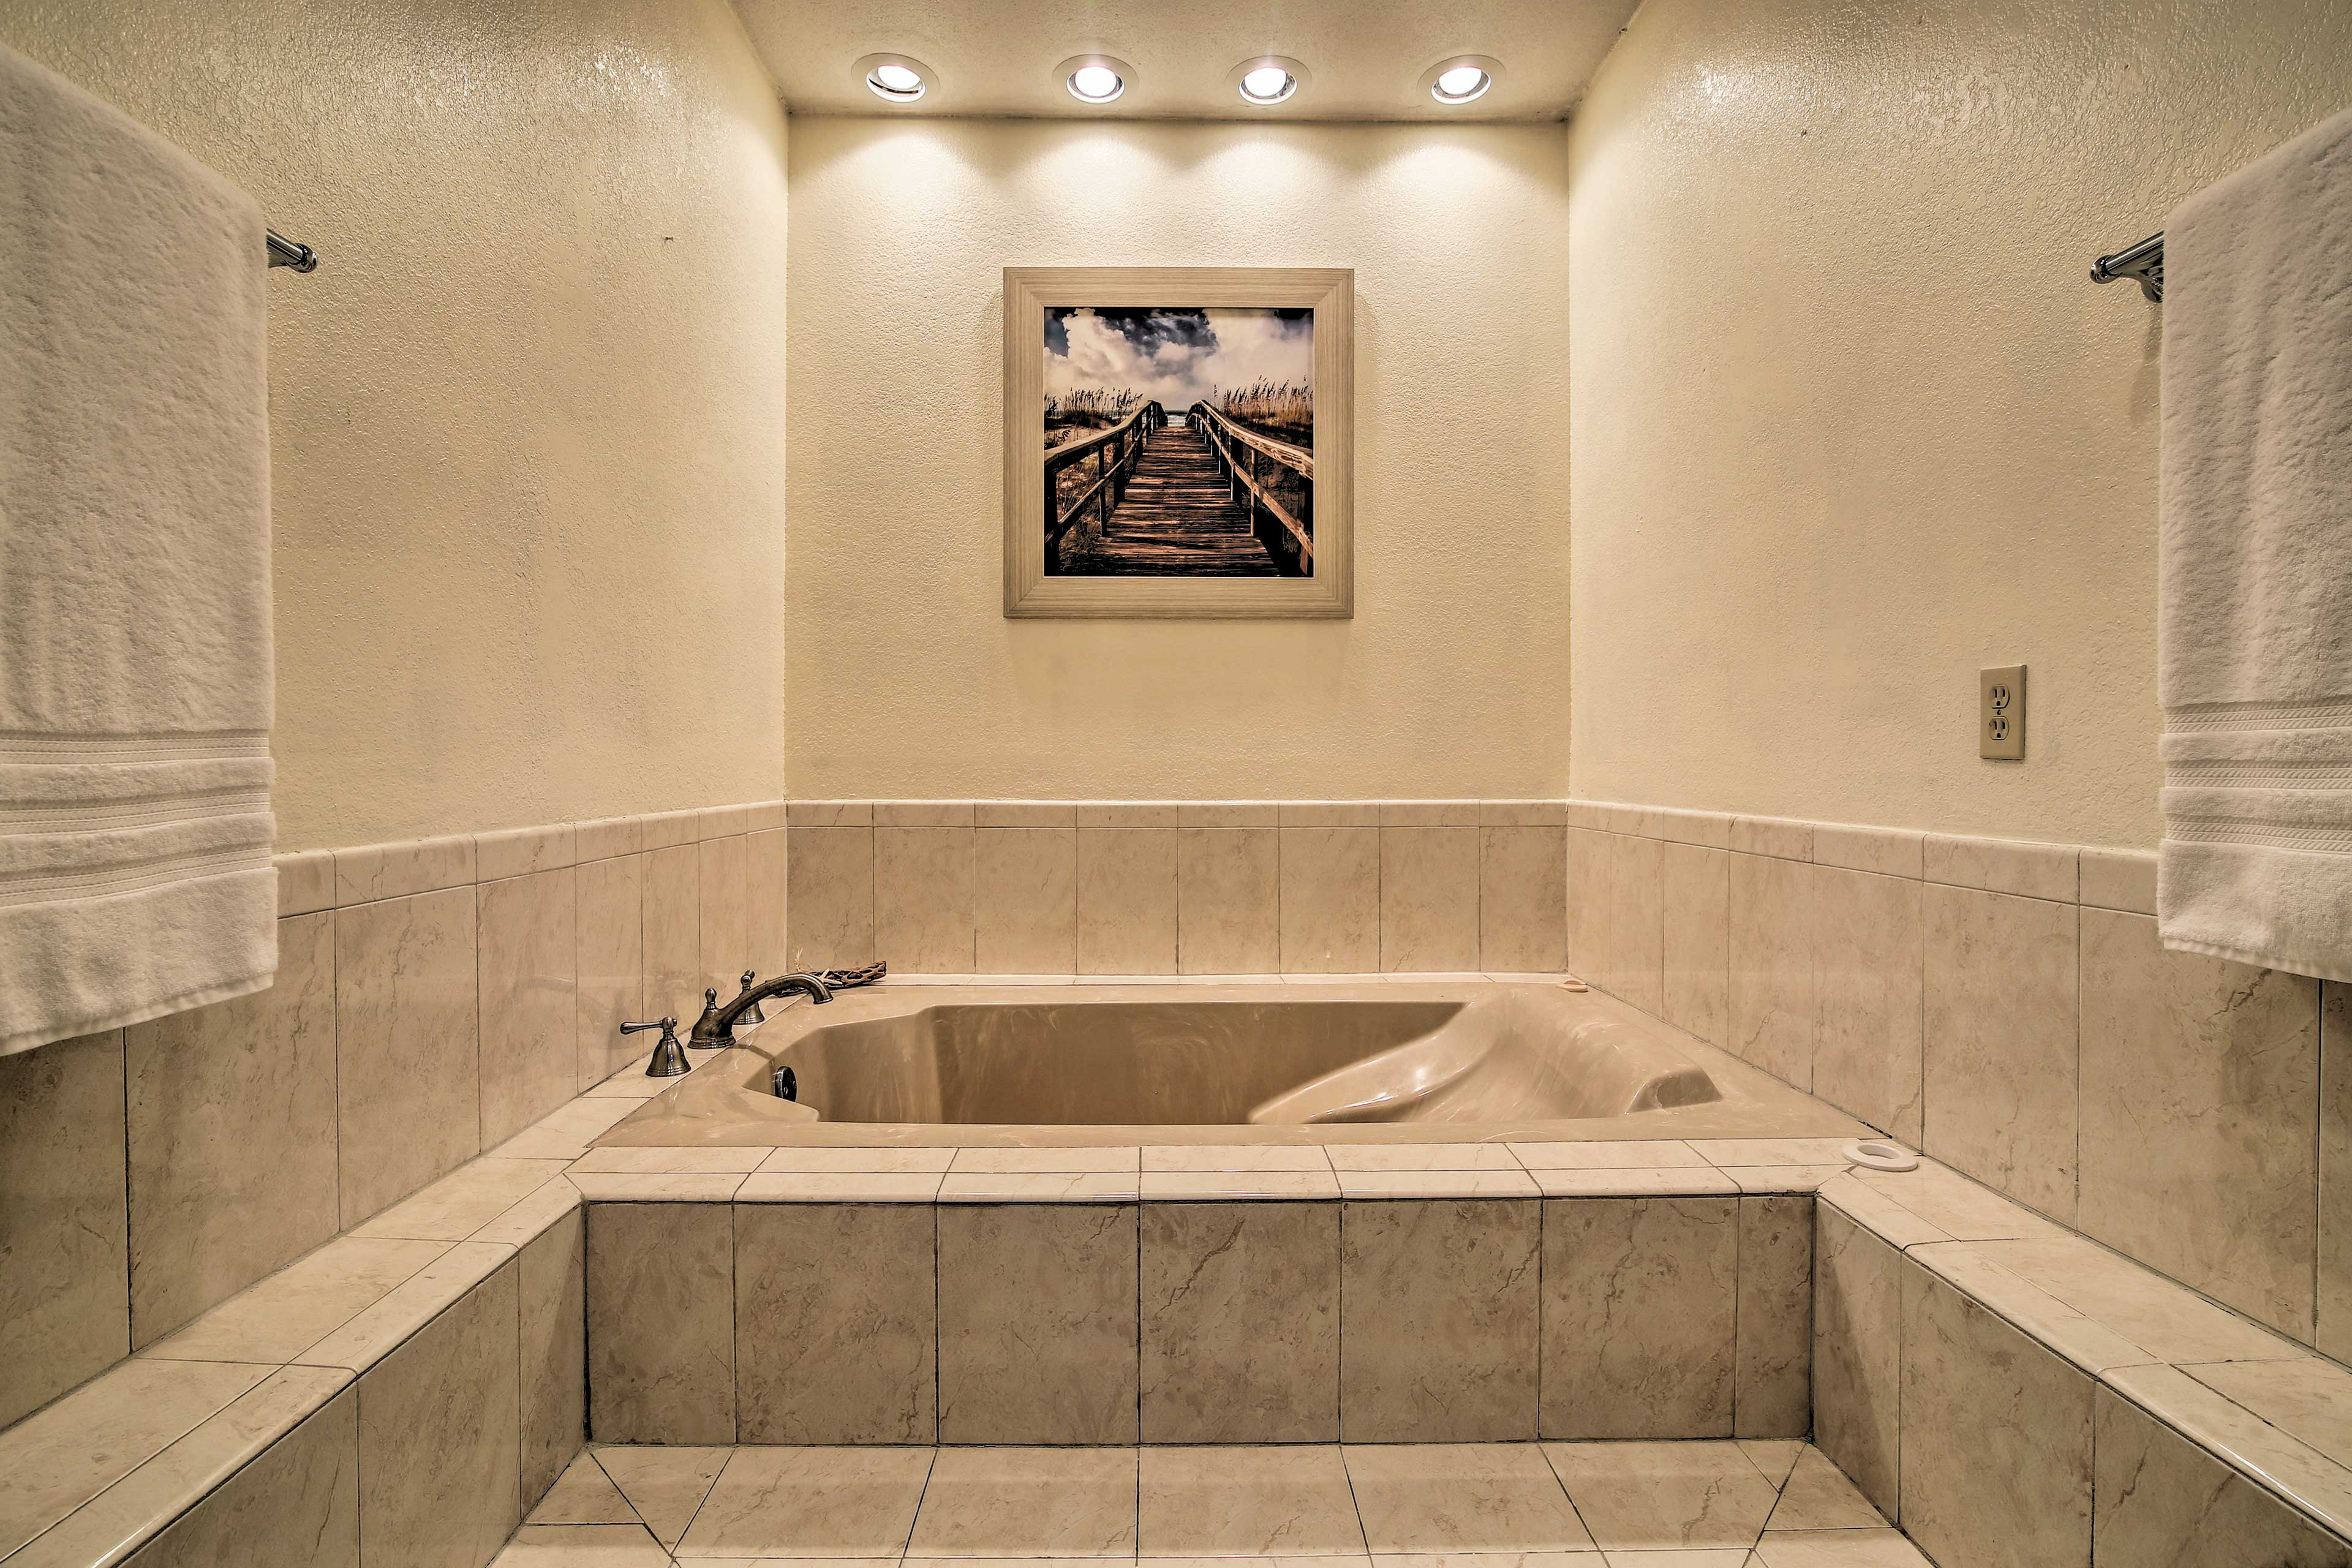 Soothing soaks await in this Jacuzzi tub.